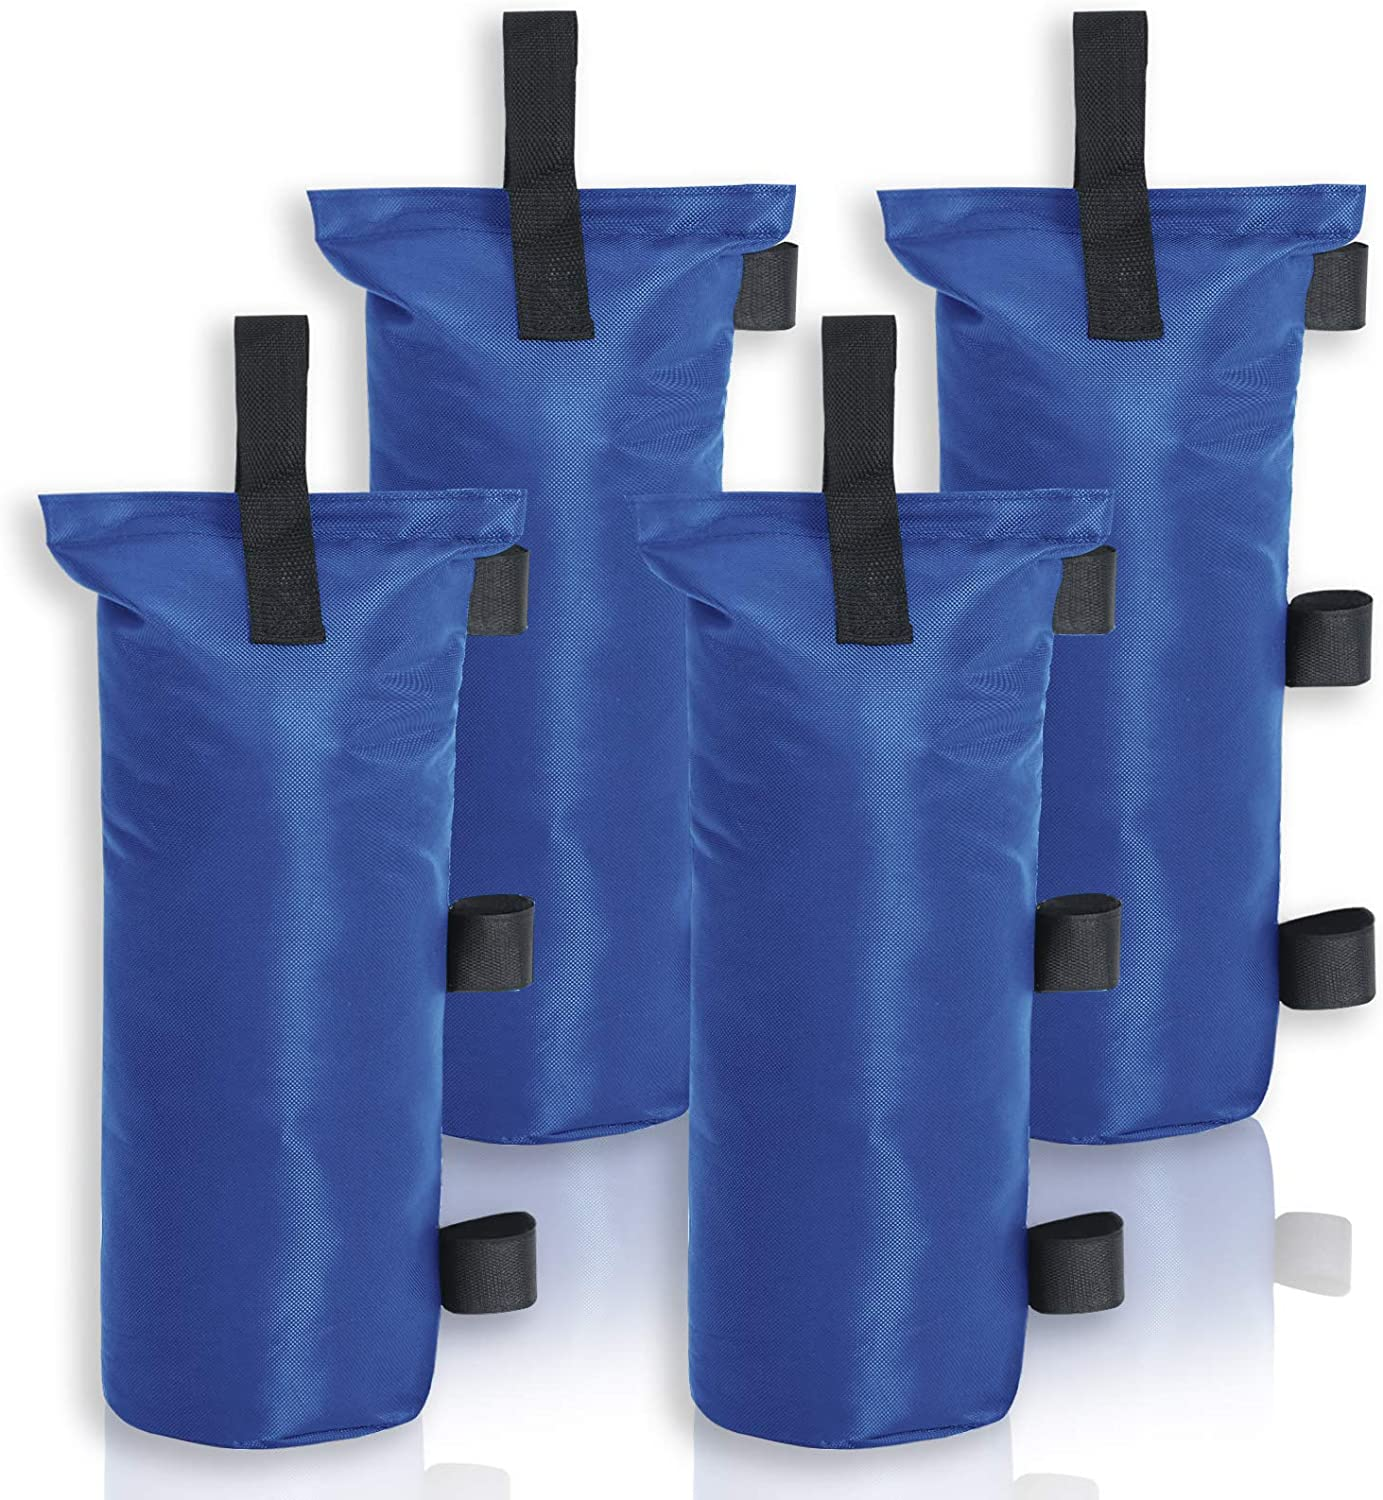 MASTERCANOPY 112lbs Weights Bags Set Challenge the High order lowest price of Japan ☆ 4 Sand for Canopy T